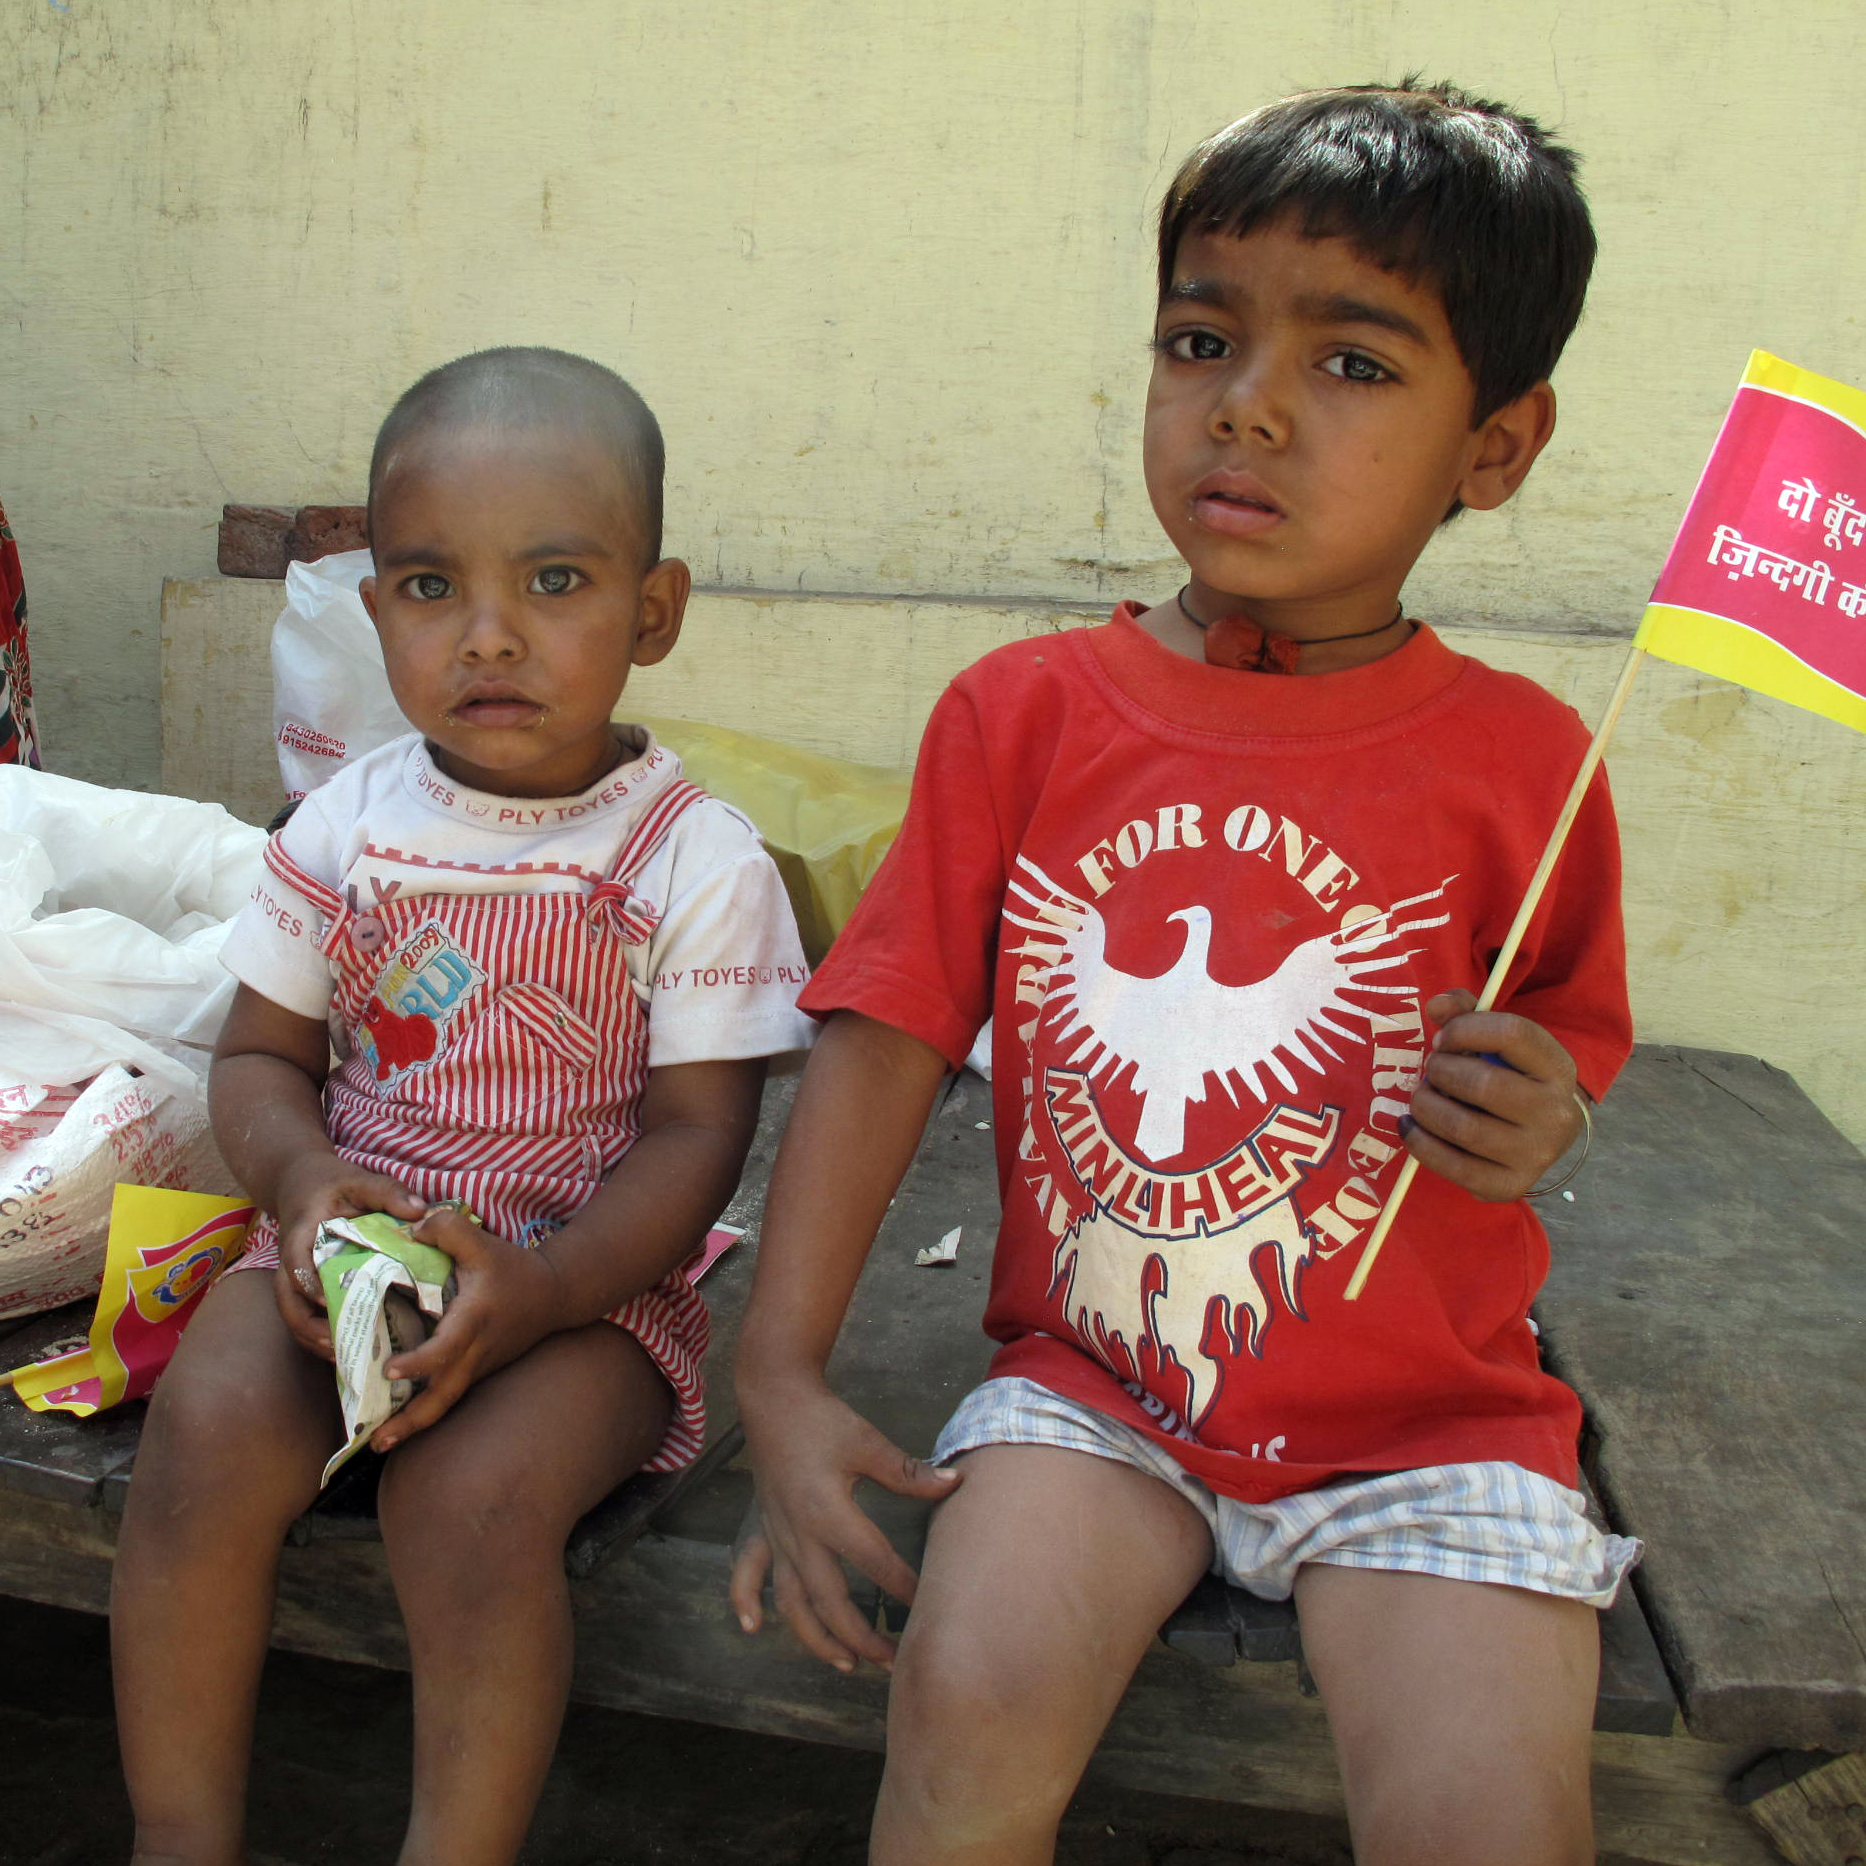 Polio campaigns are no longer just for fighting polio. Here three kids get snacks at a vaccination booth in Moradabad, India, to help prevent malnutrition.